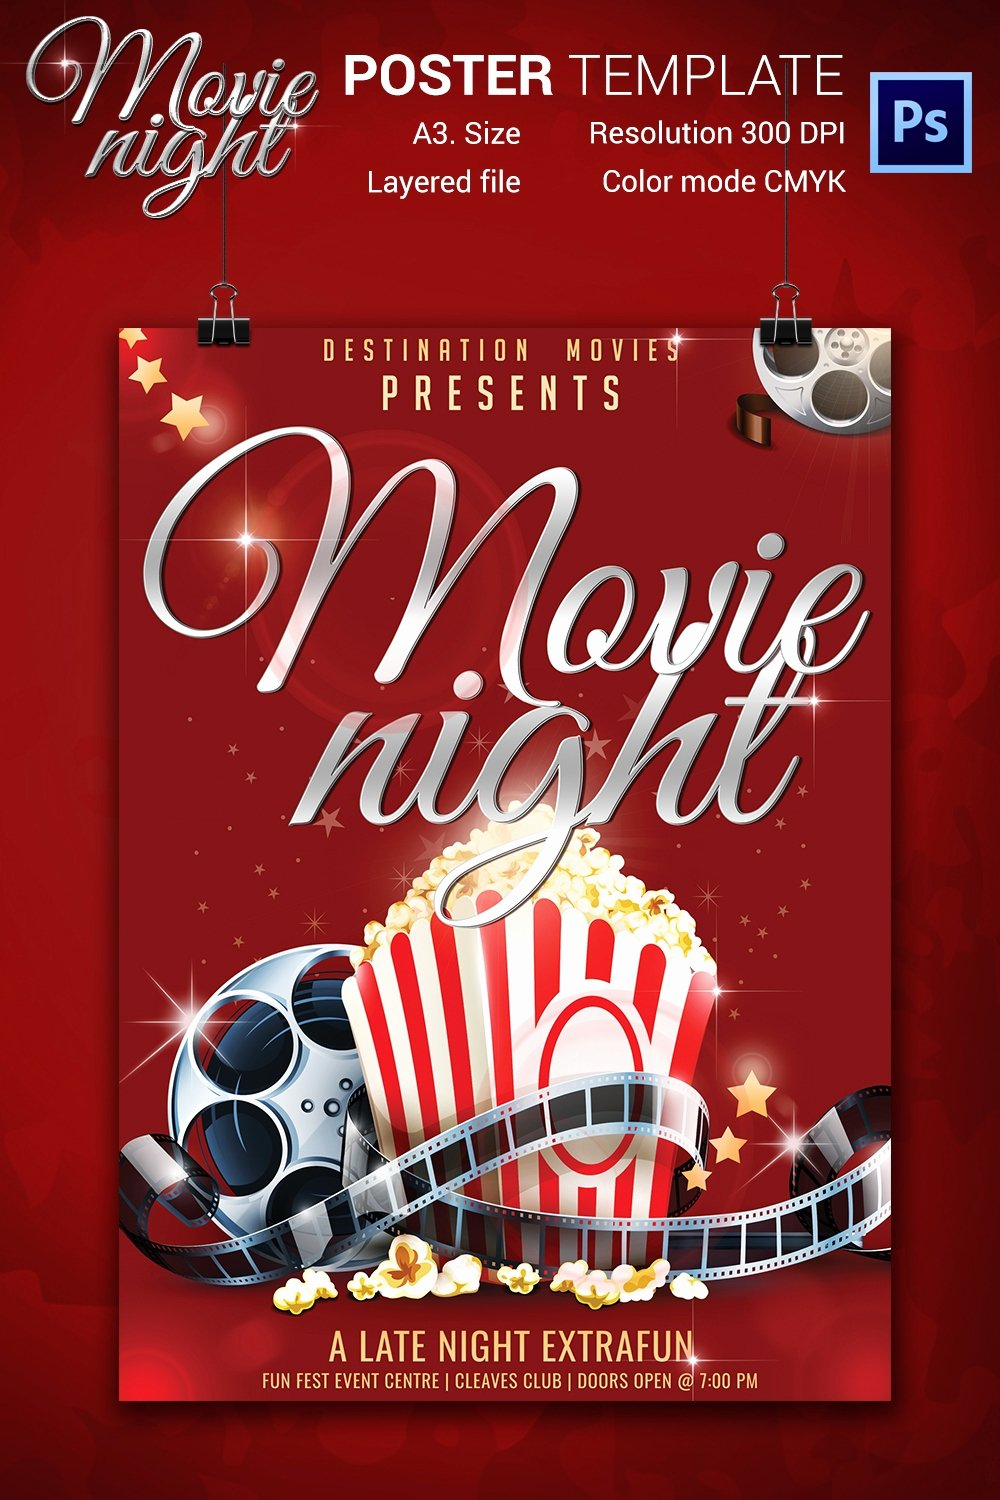 Movie Night Flyer Template Lovely Movie Night Flyer Template 25 Free Jpg Psd format